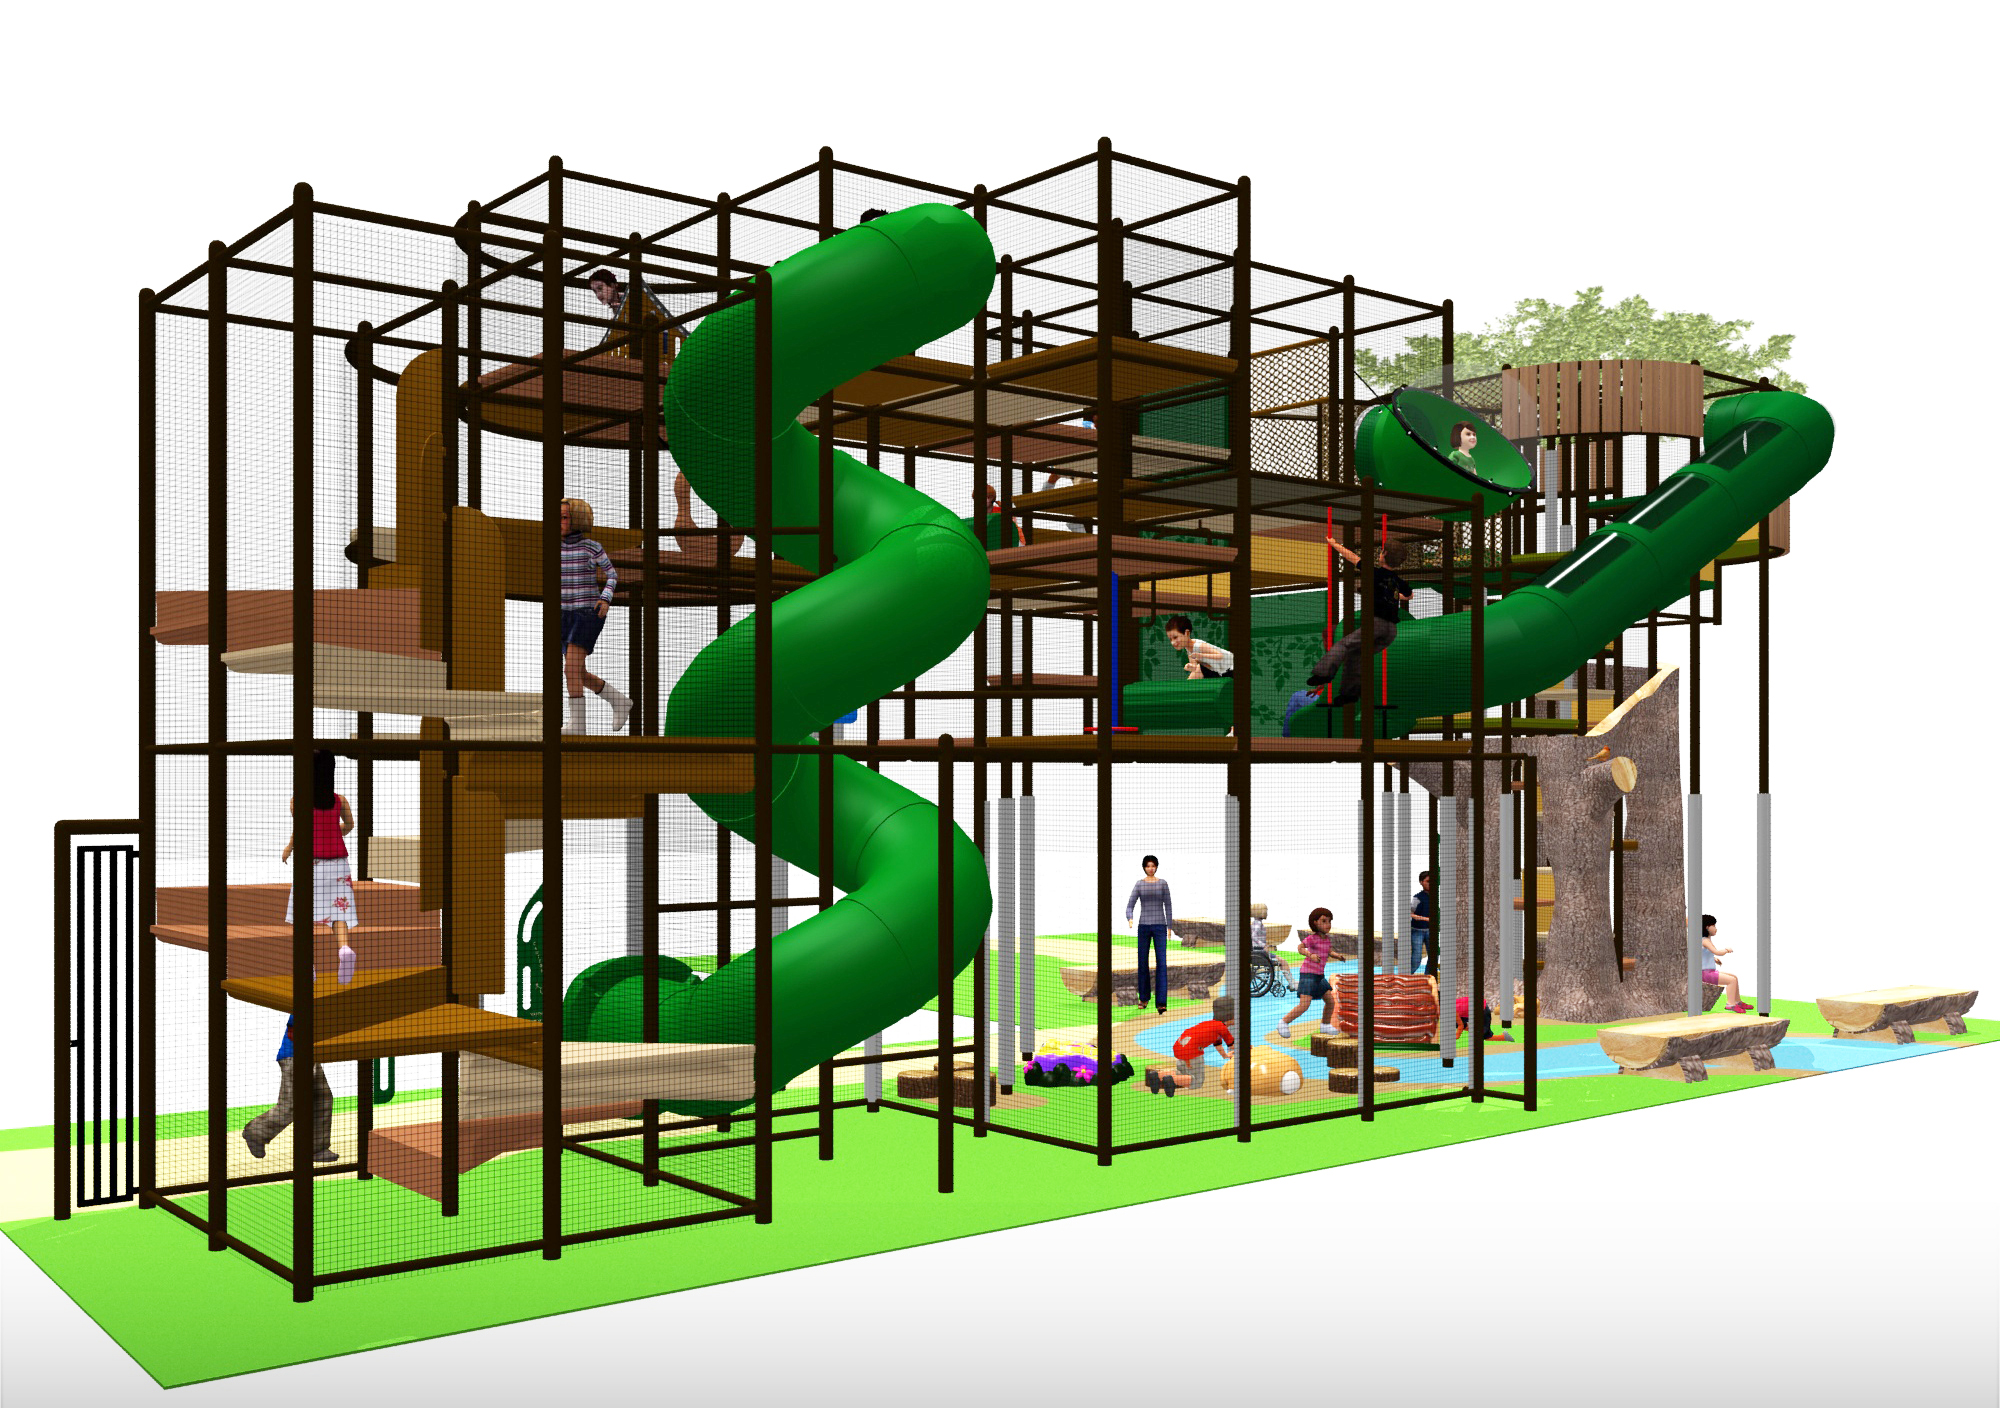 Large outdoor play area with slides